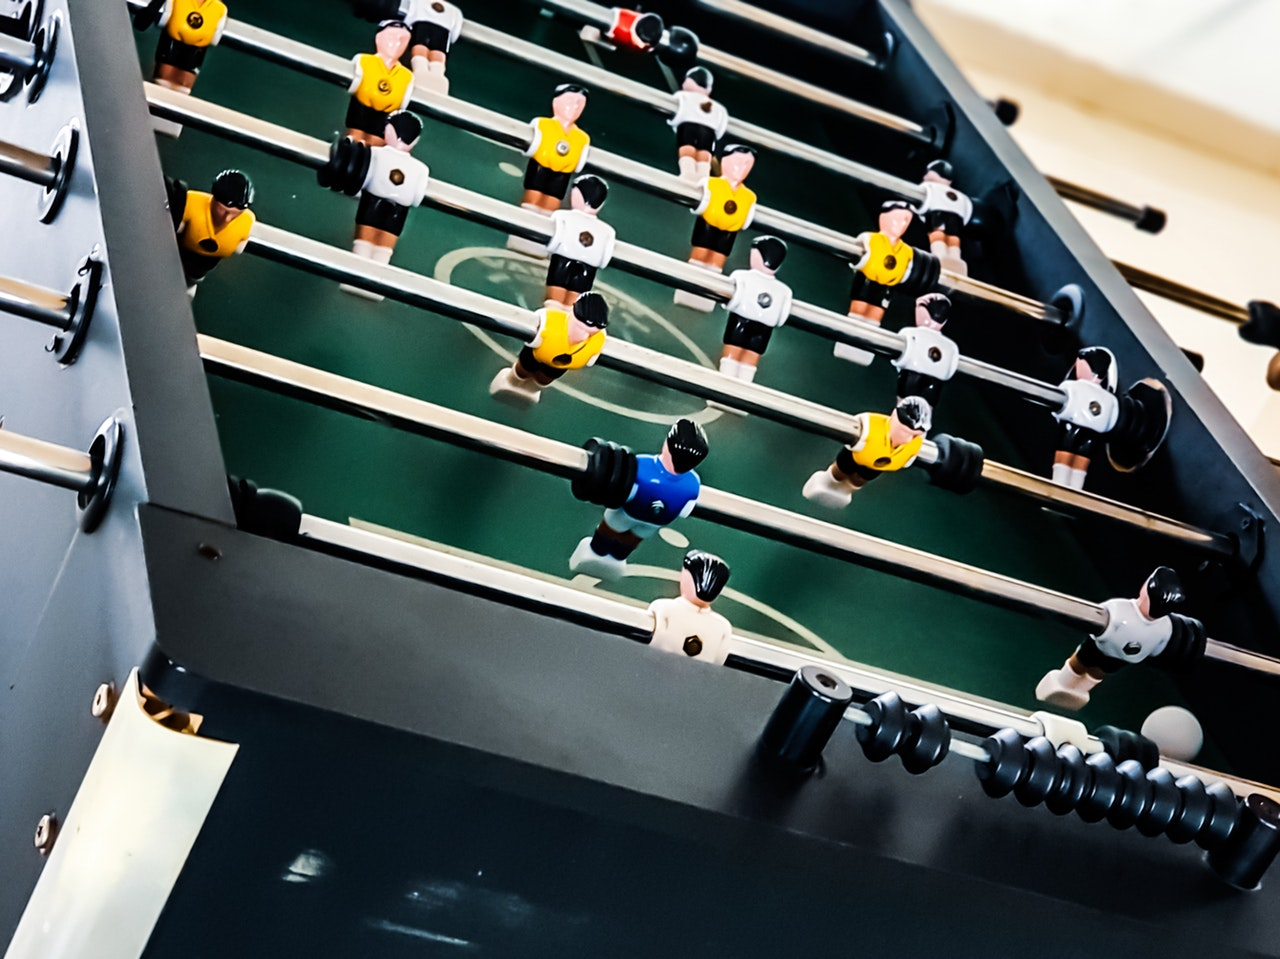 10 Best Foosball Table Reviews For Your Money Updated 2019